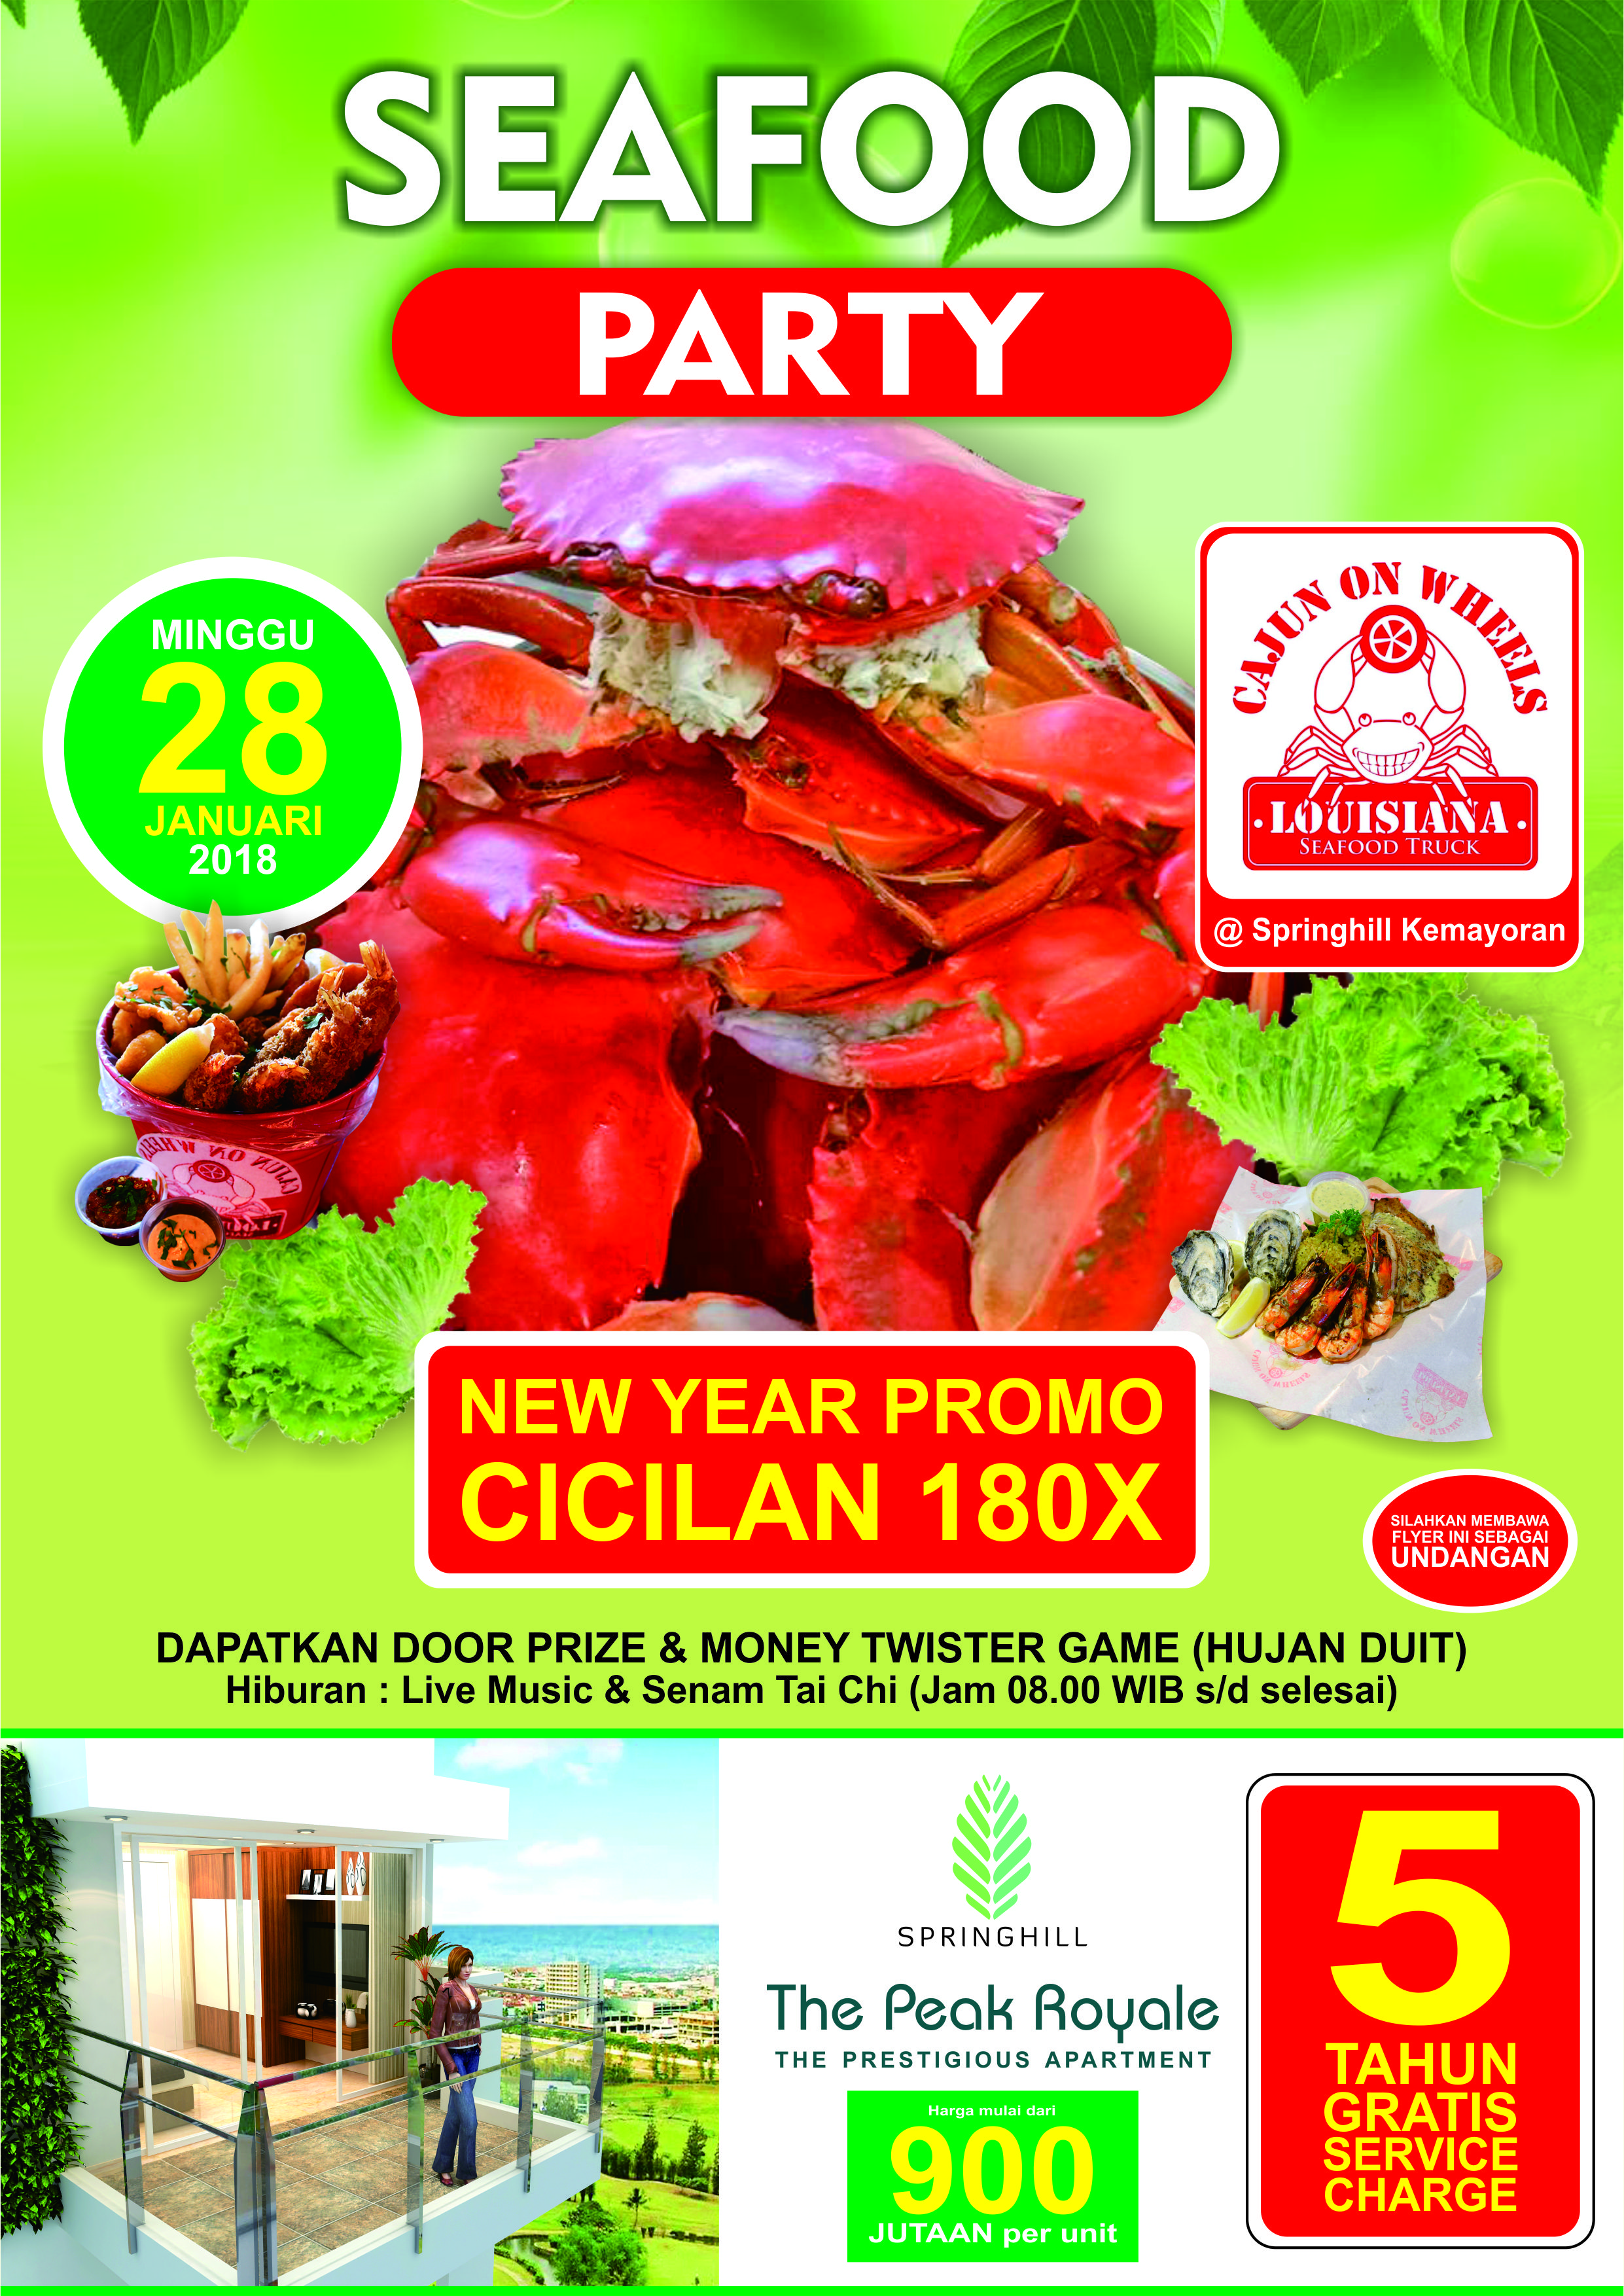 Seafood Party by Cajun on Wheels @Springhill Kemayoran